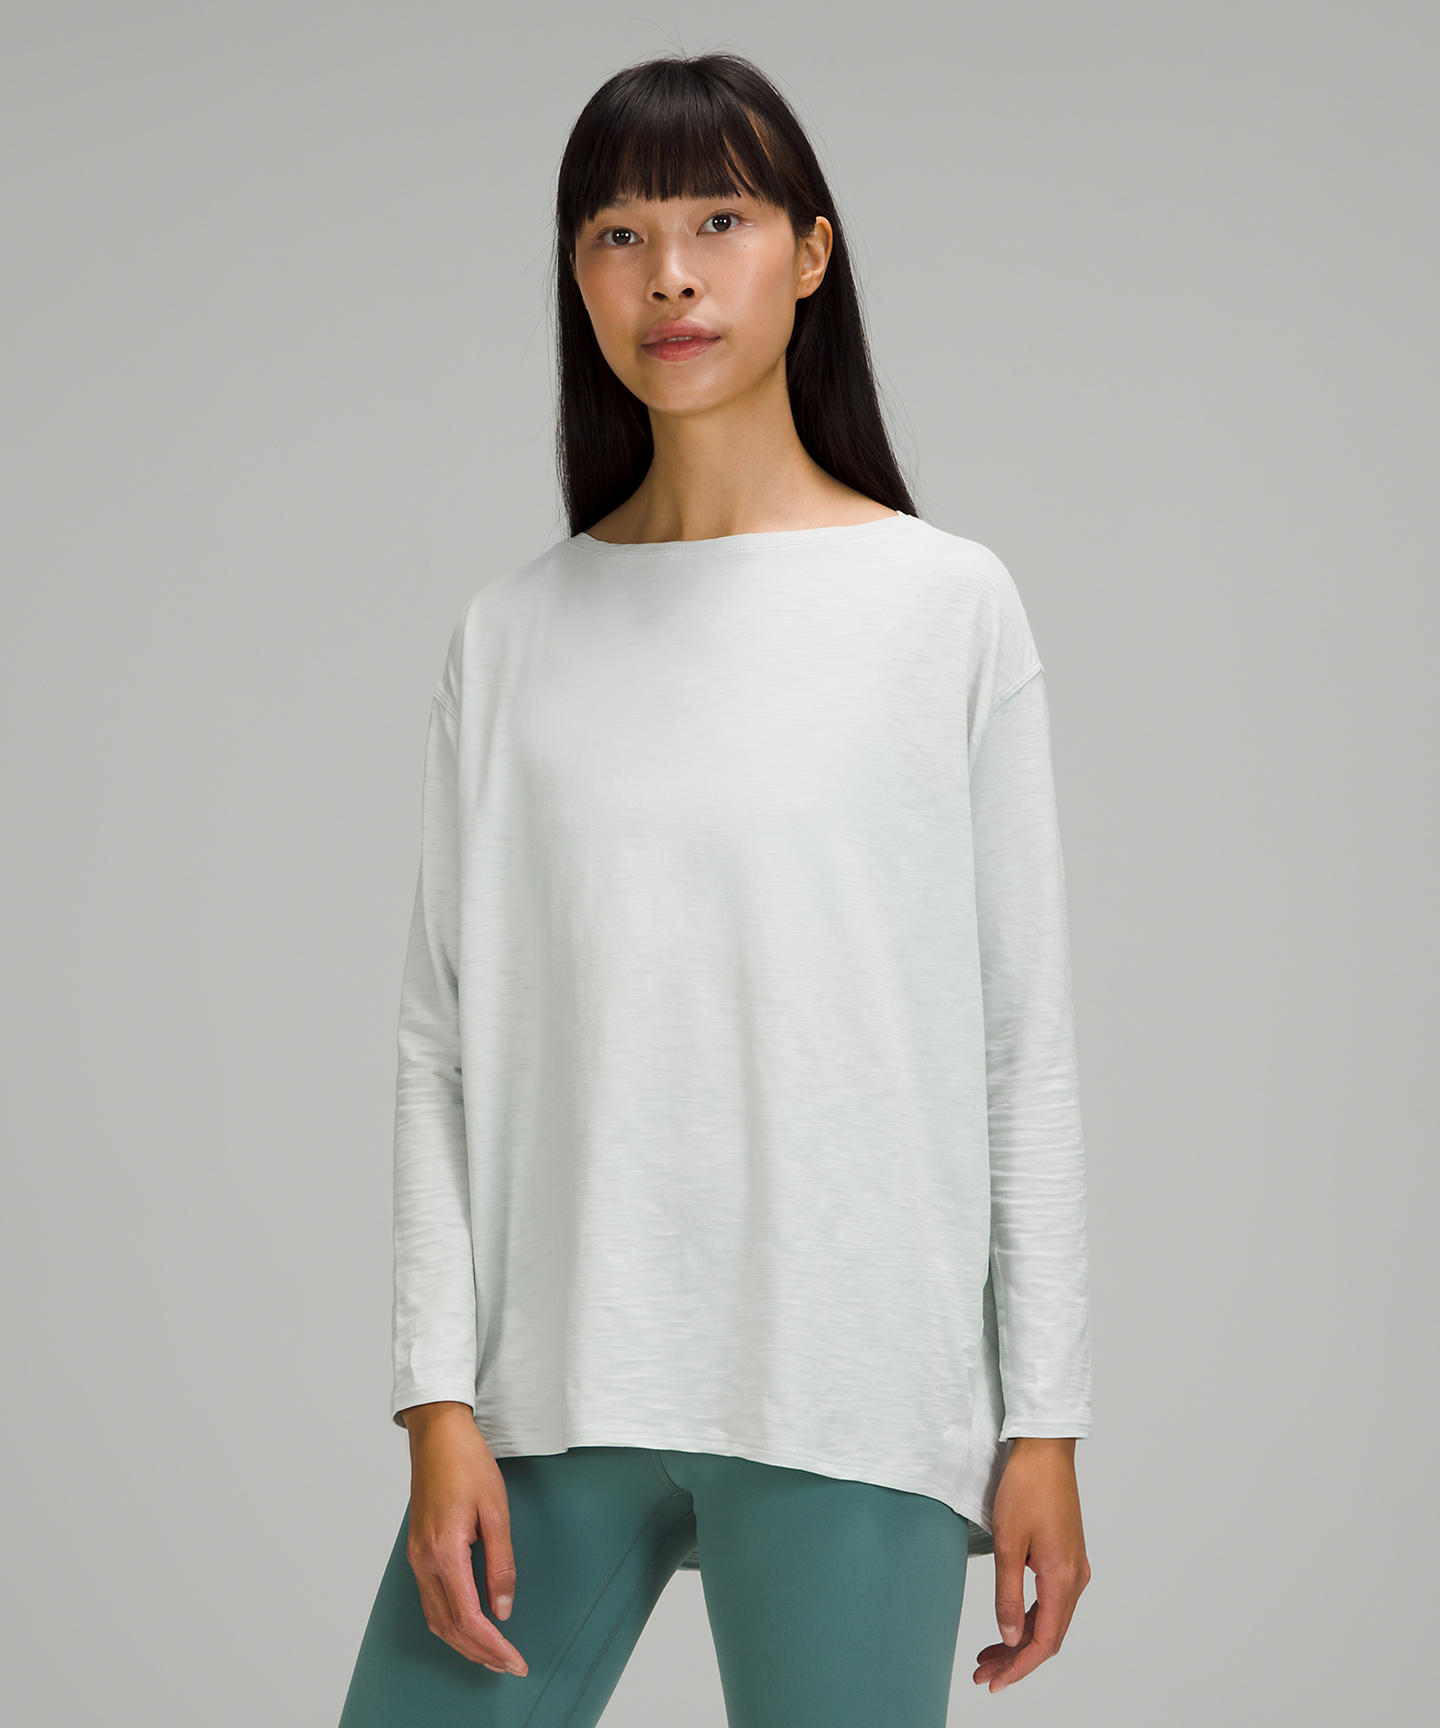 Lululemon: New Styles added to sale (7/29)